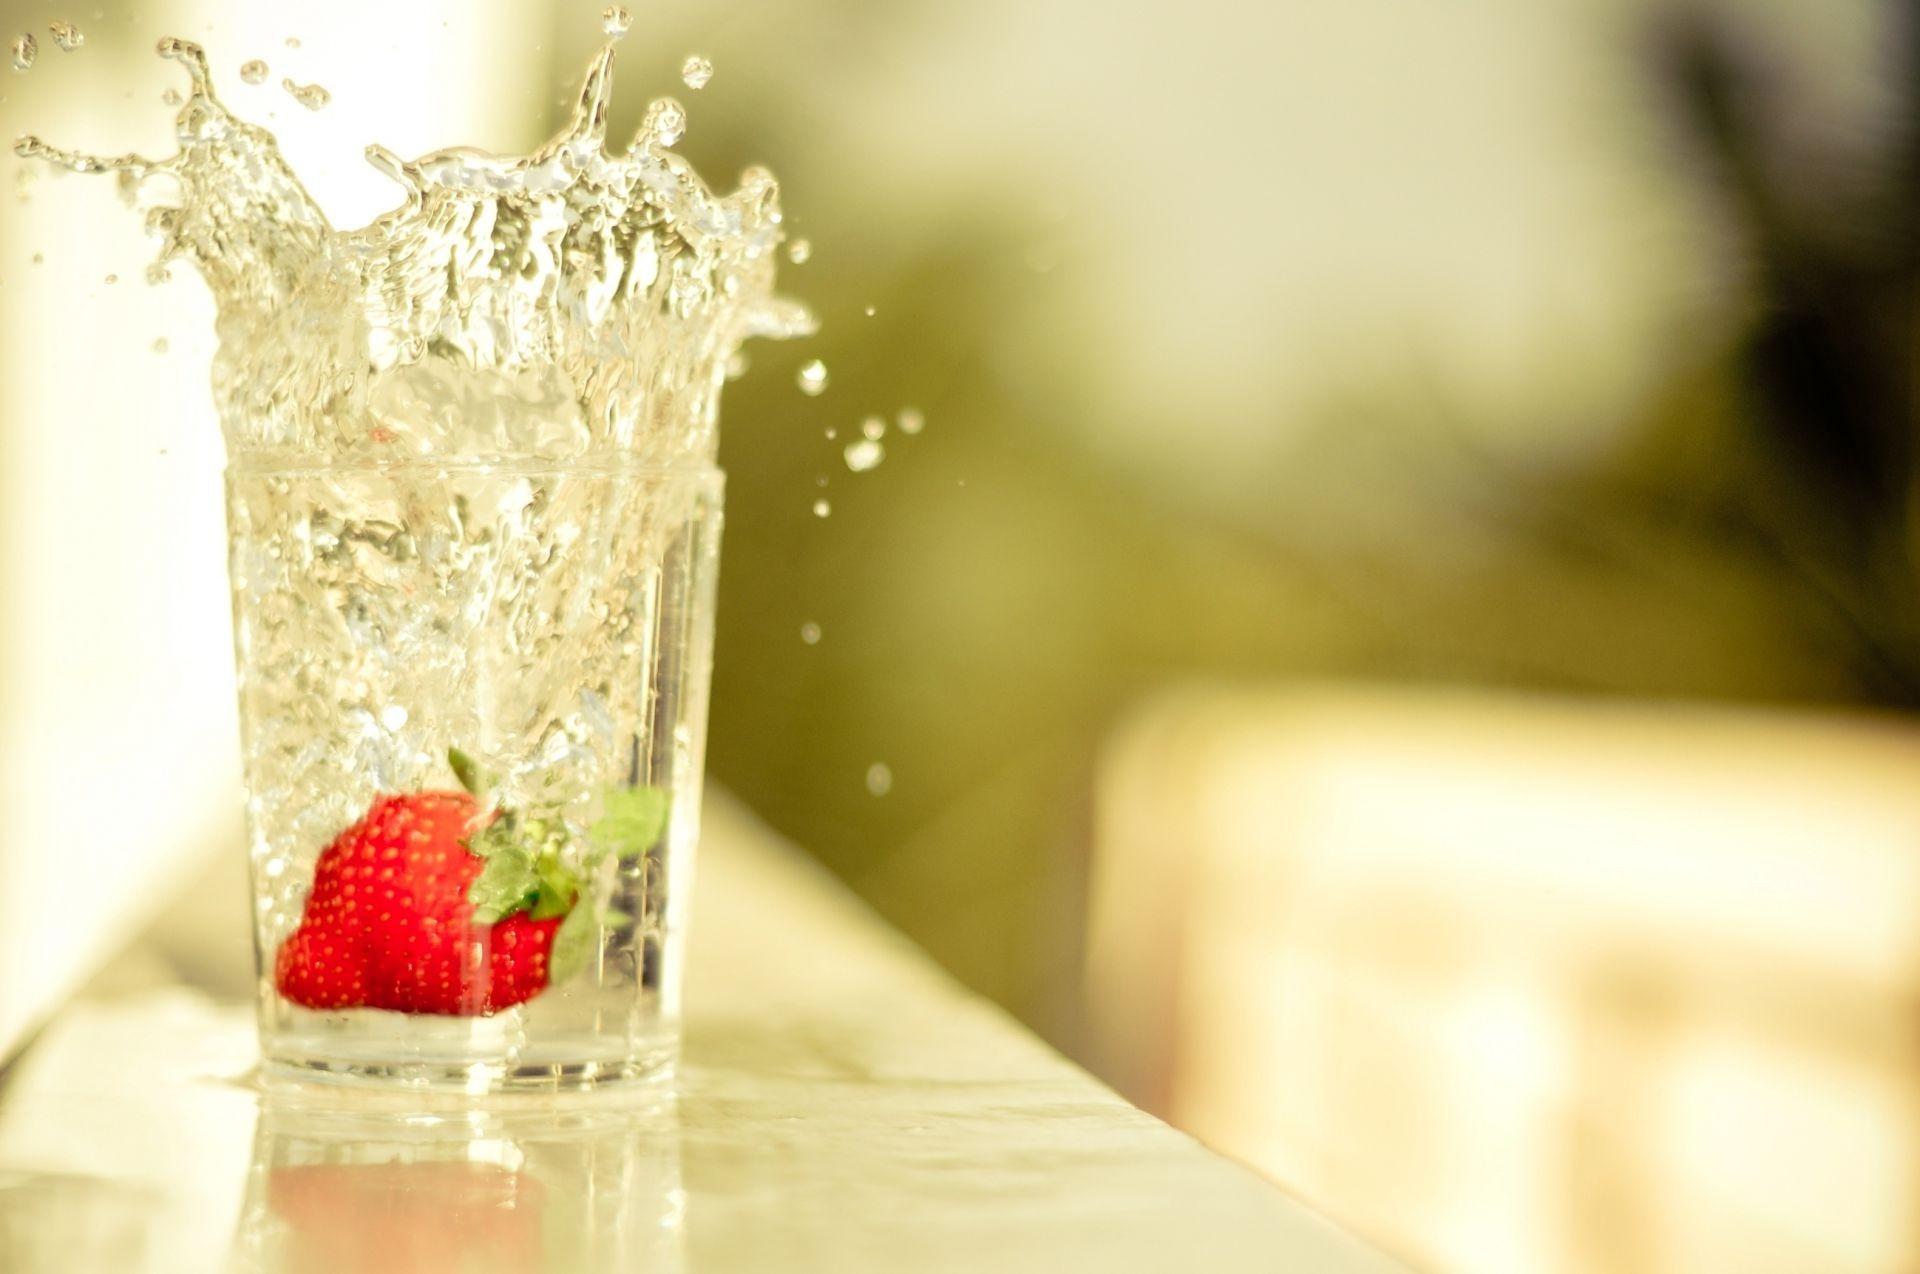 food & drink glass ice fruit food drink cold water blur refreshment sweet strawberry wet